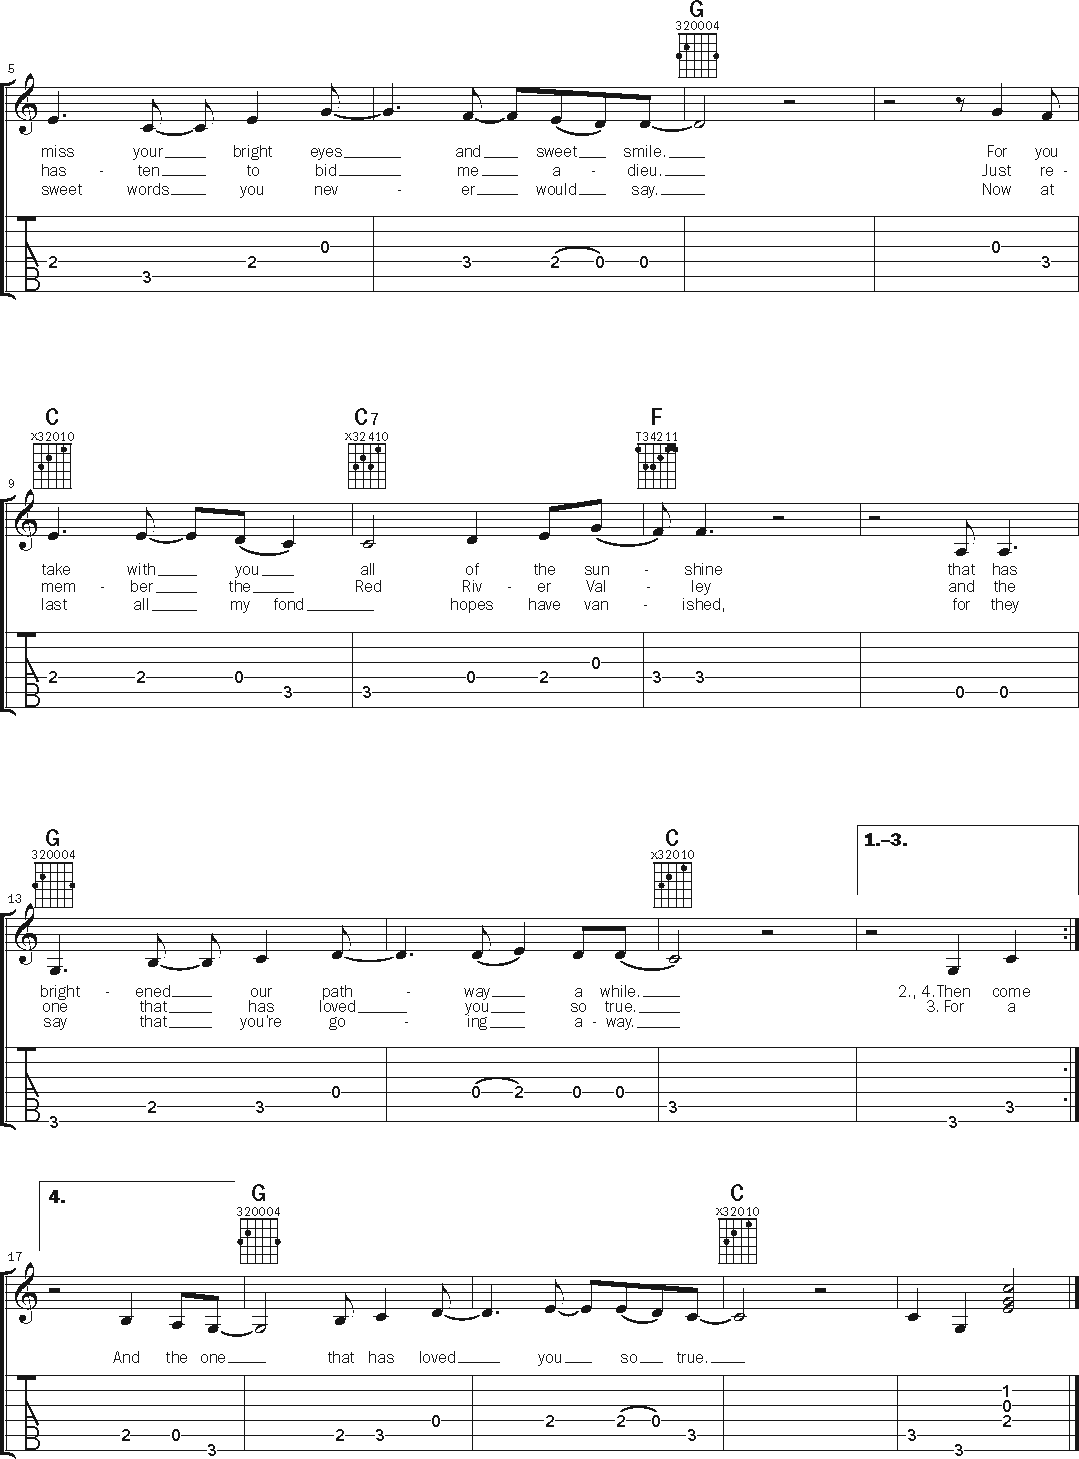 guitar notation for 'Red River Valley' page 2